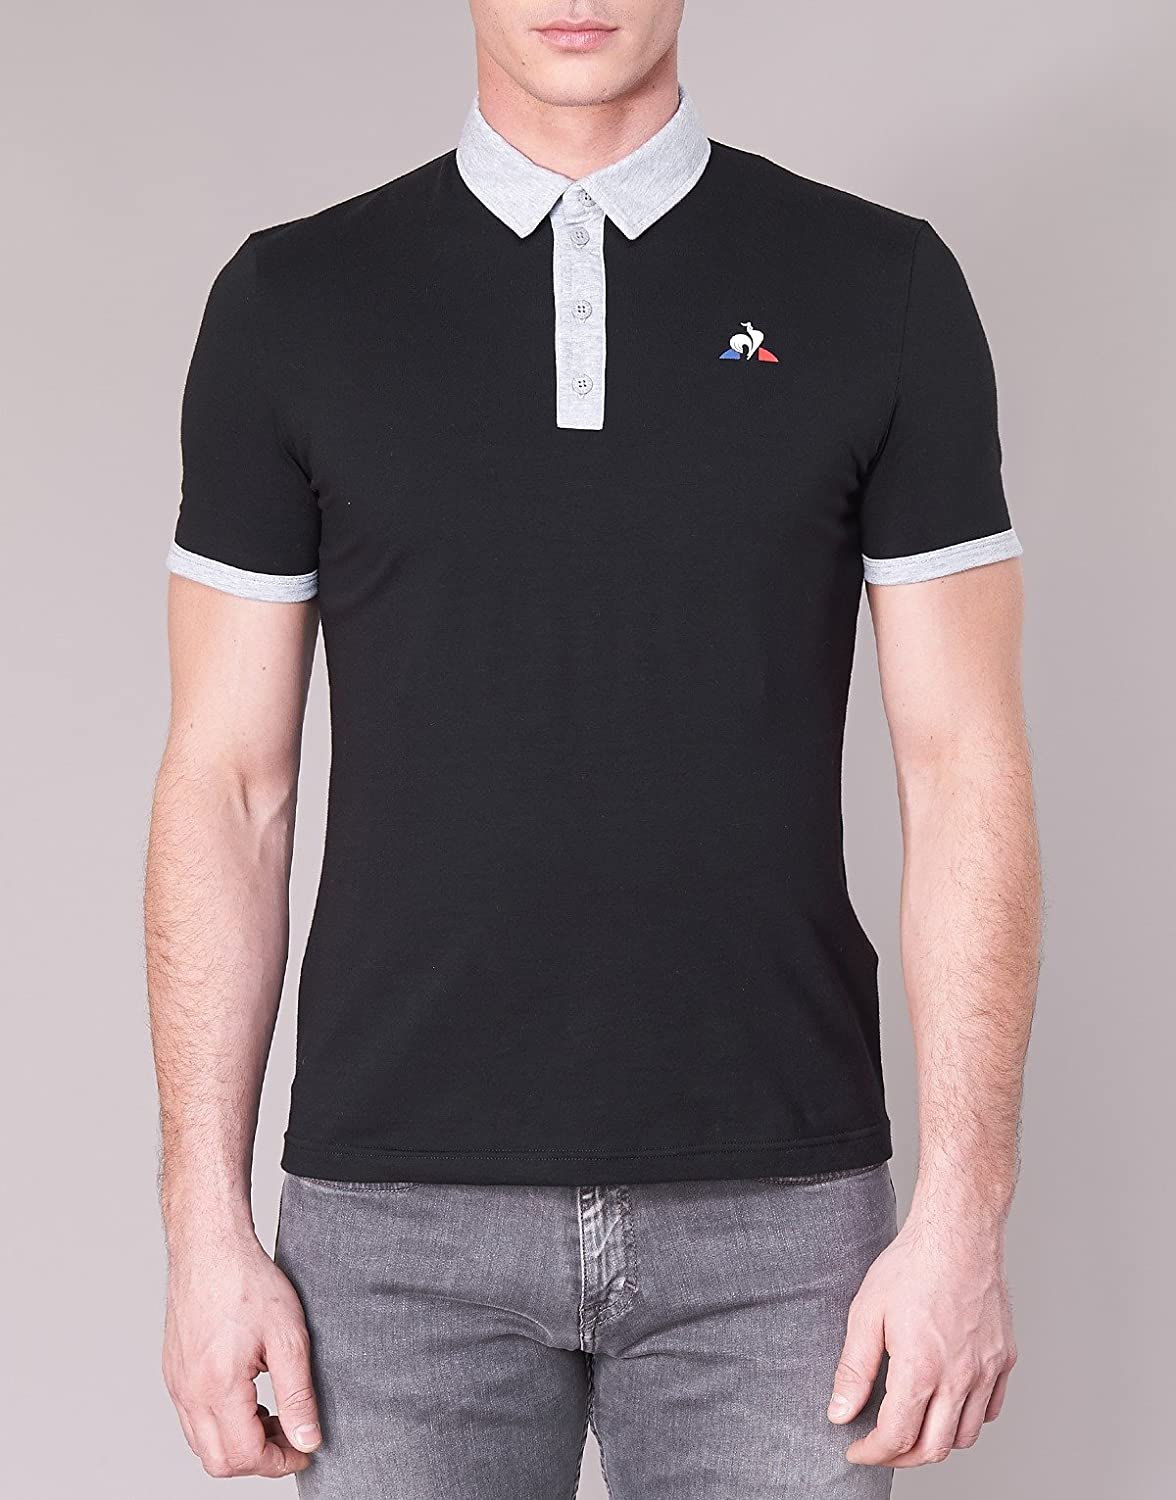 Le Coq Sportif Essentiels Polo SS N°1, Polo - S: Amazon.es: Ropa y ...